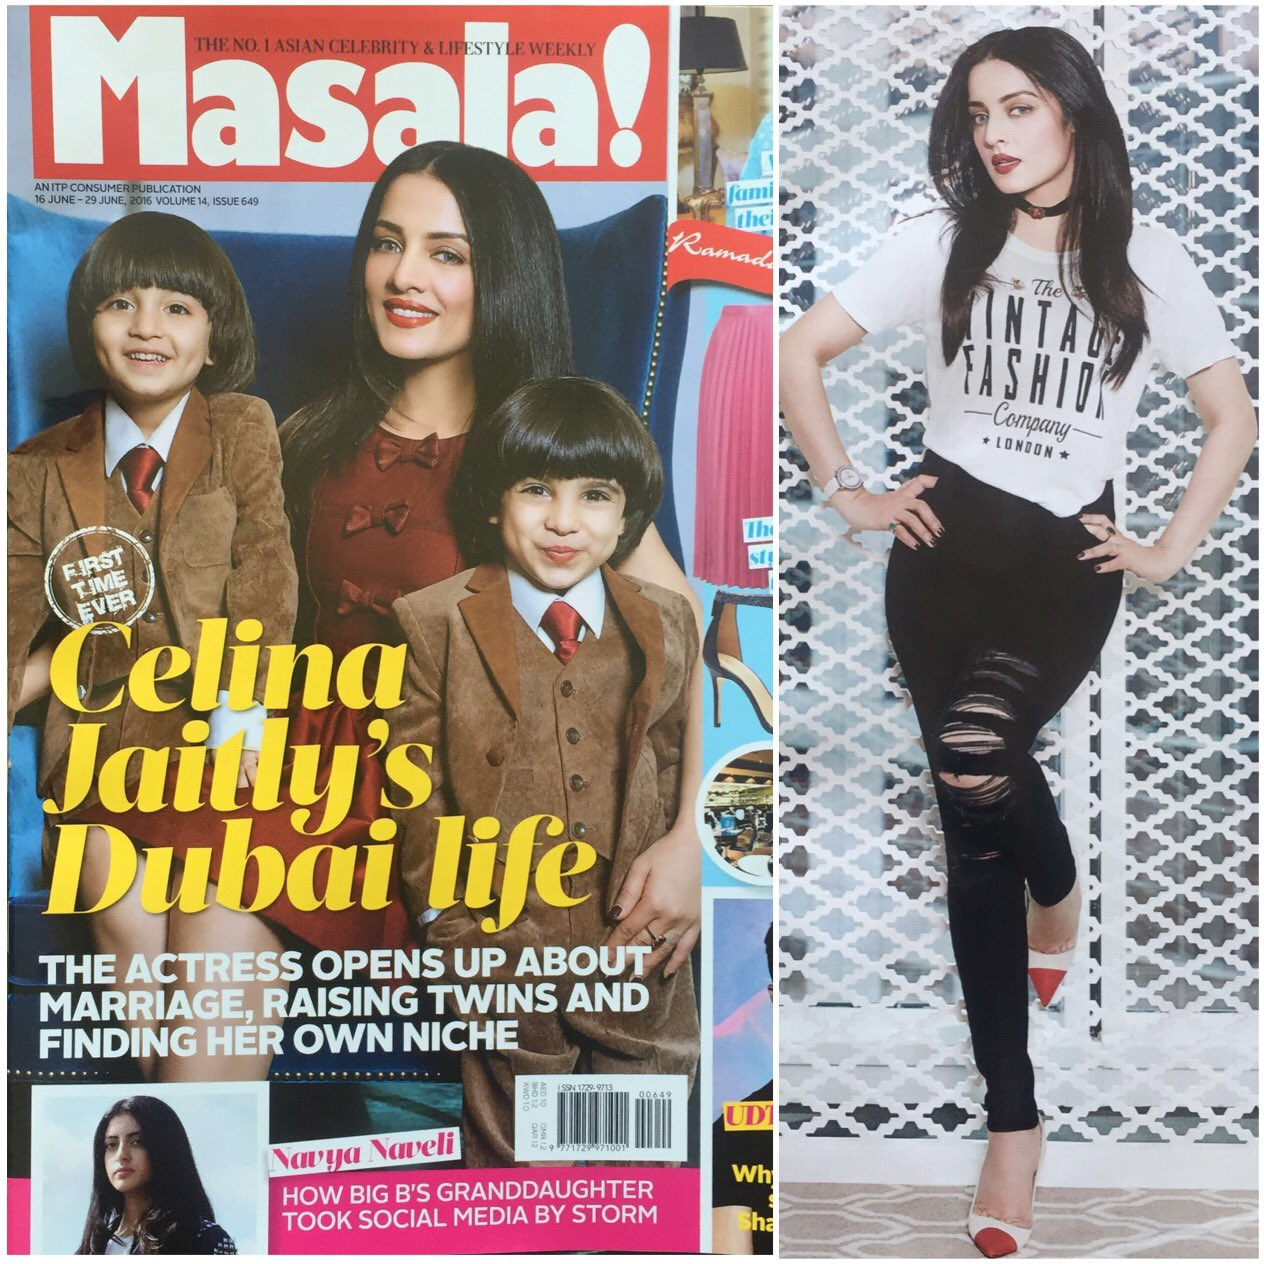 Celina Jaitly With Her Twins on the Cover of Masala Magazine India June 2016